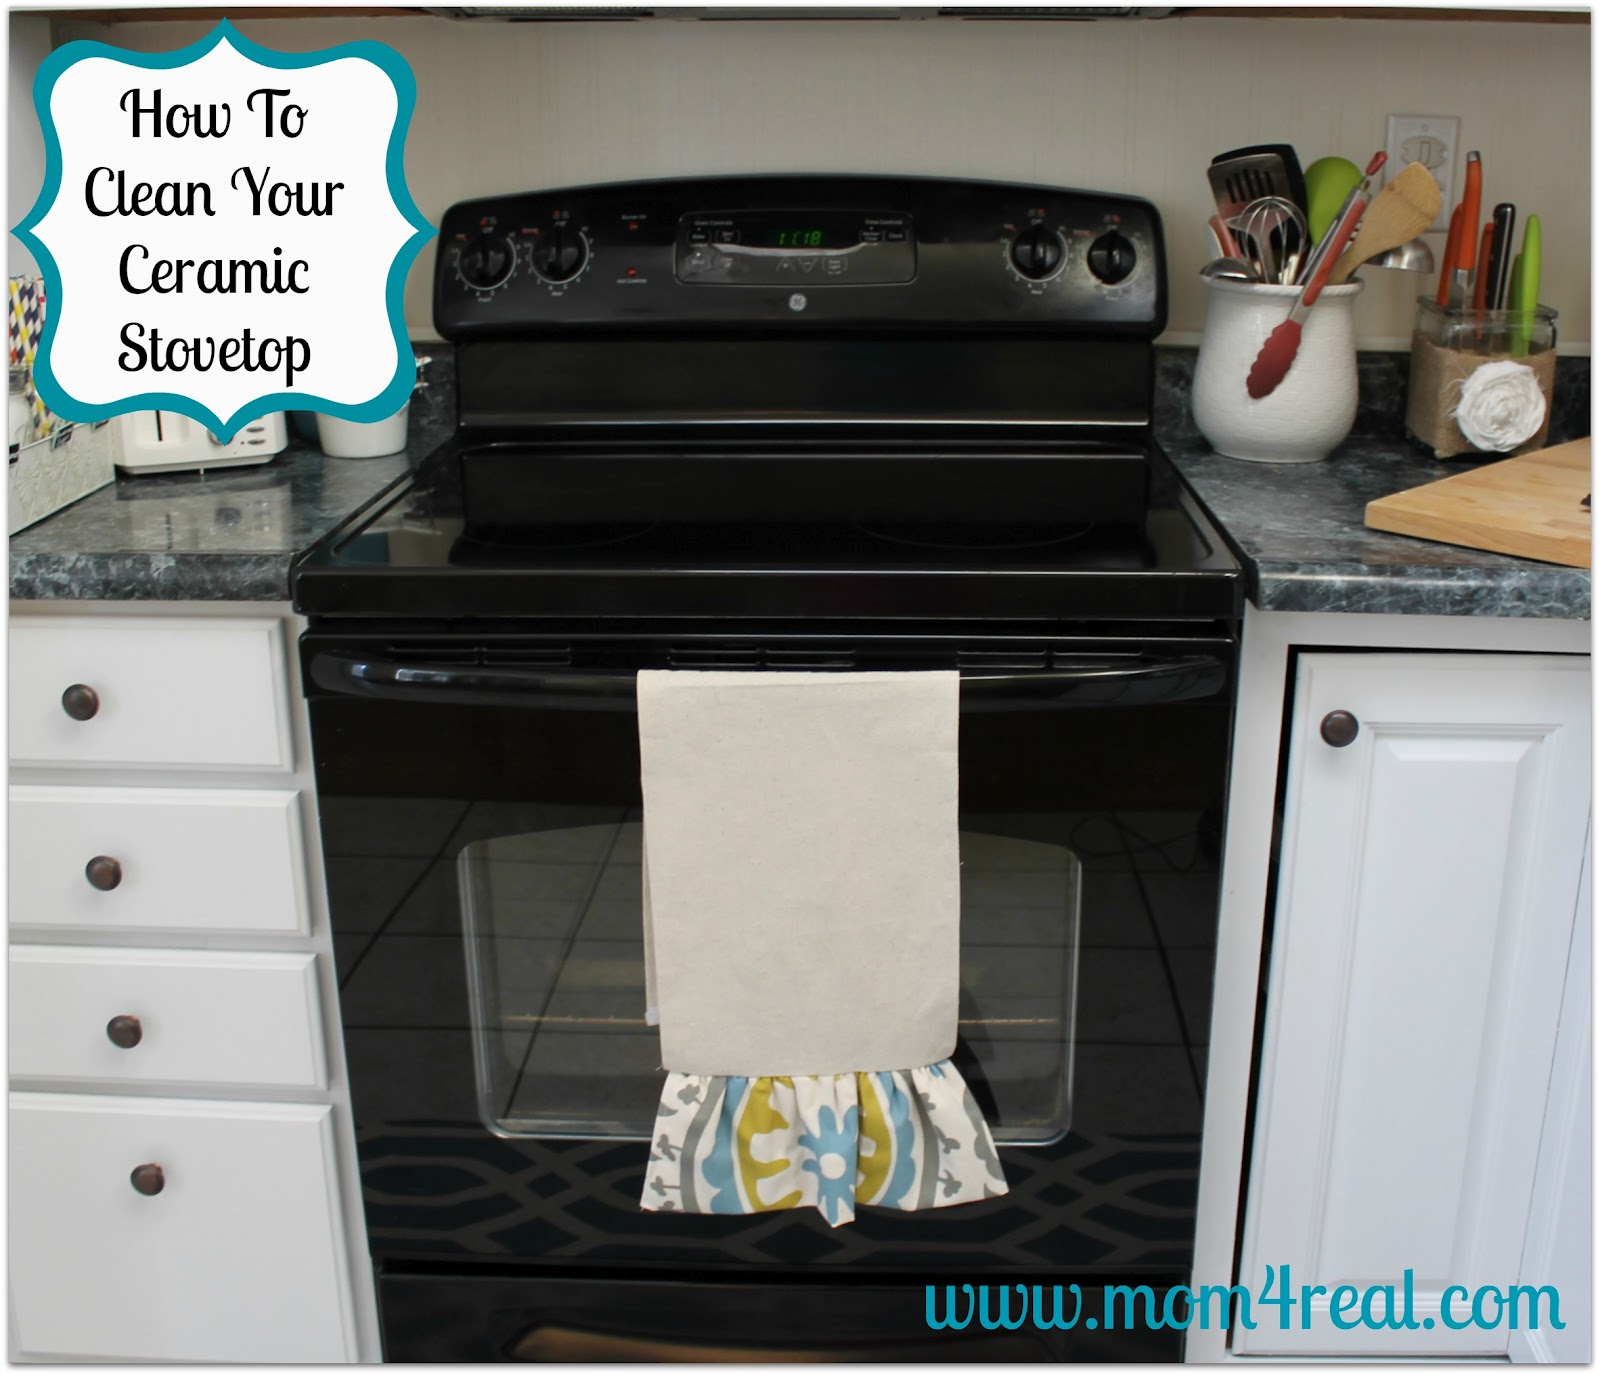 How To Clean Your Ceramic Stovetop